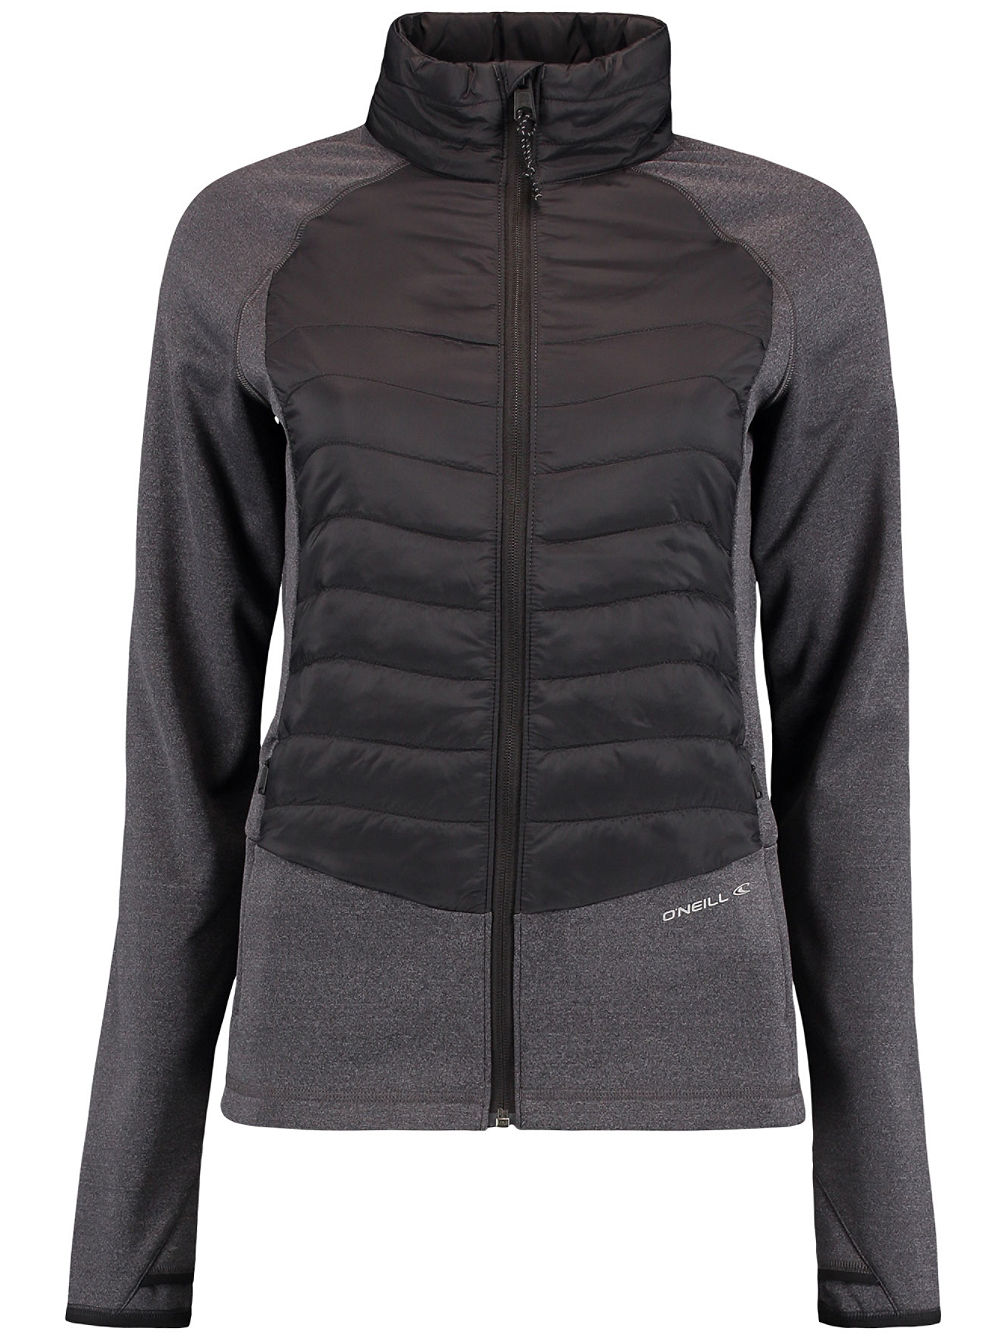 X-Kinetic Full Zip Fleece Jacket